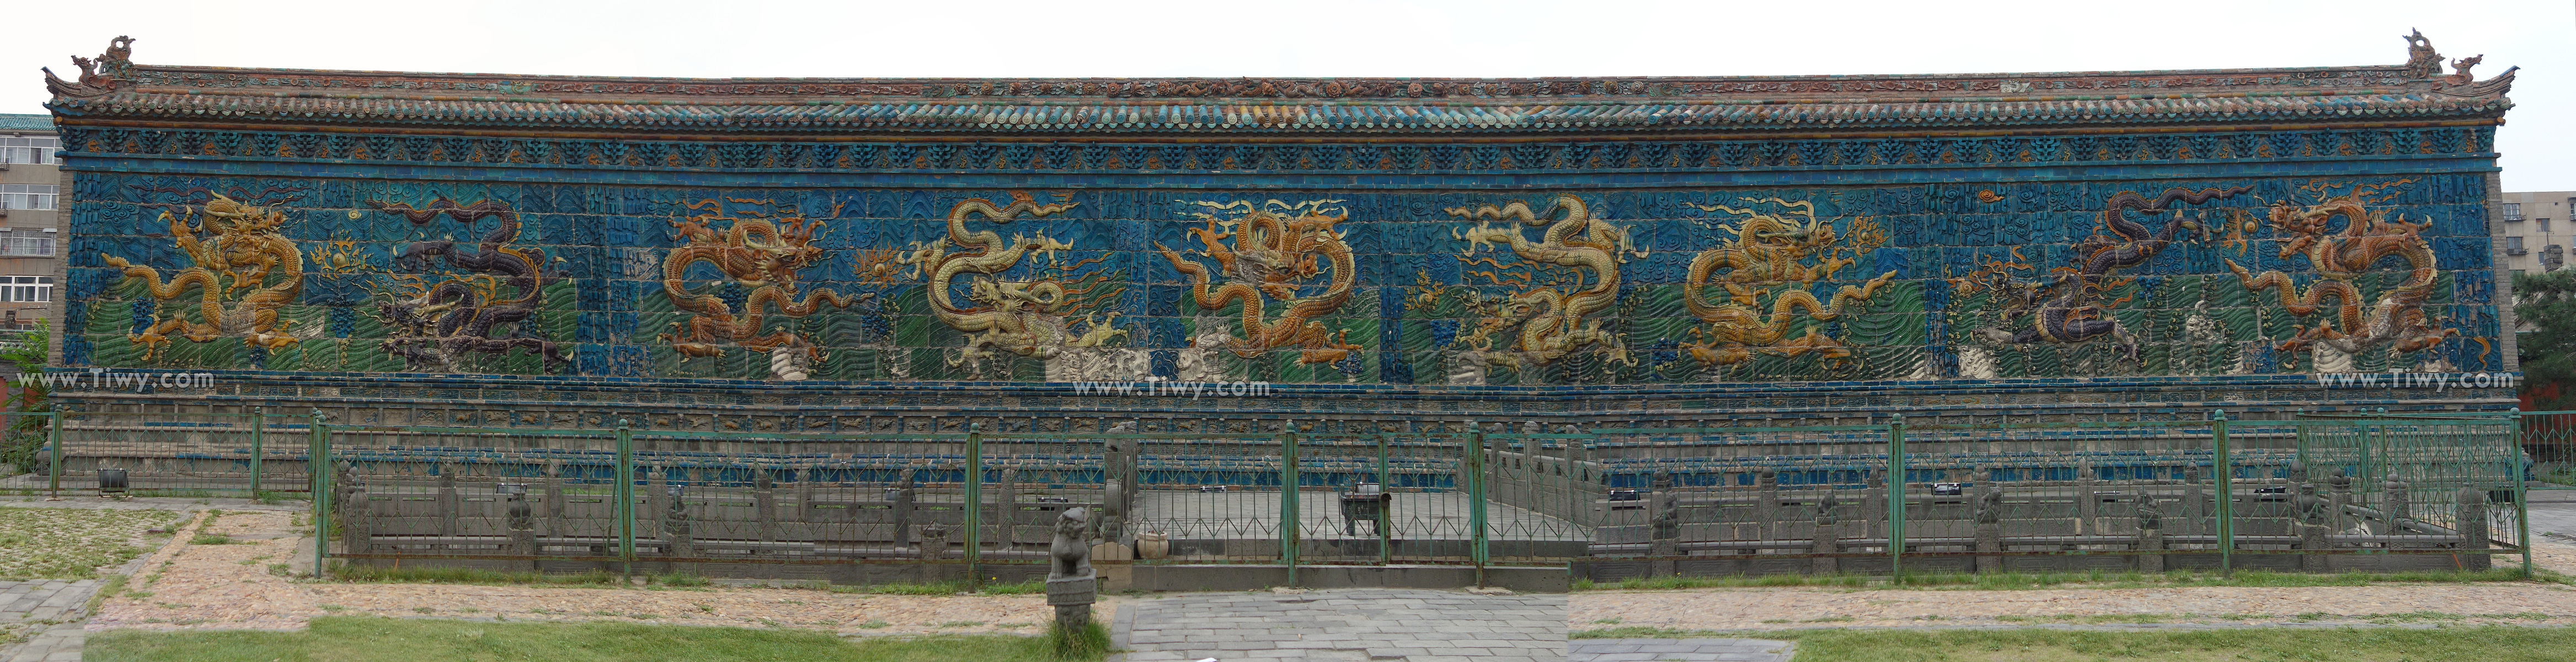 Nine Dragon Wall: Inside The City Wall Of Datong («Old Town»)